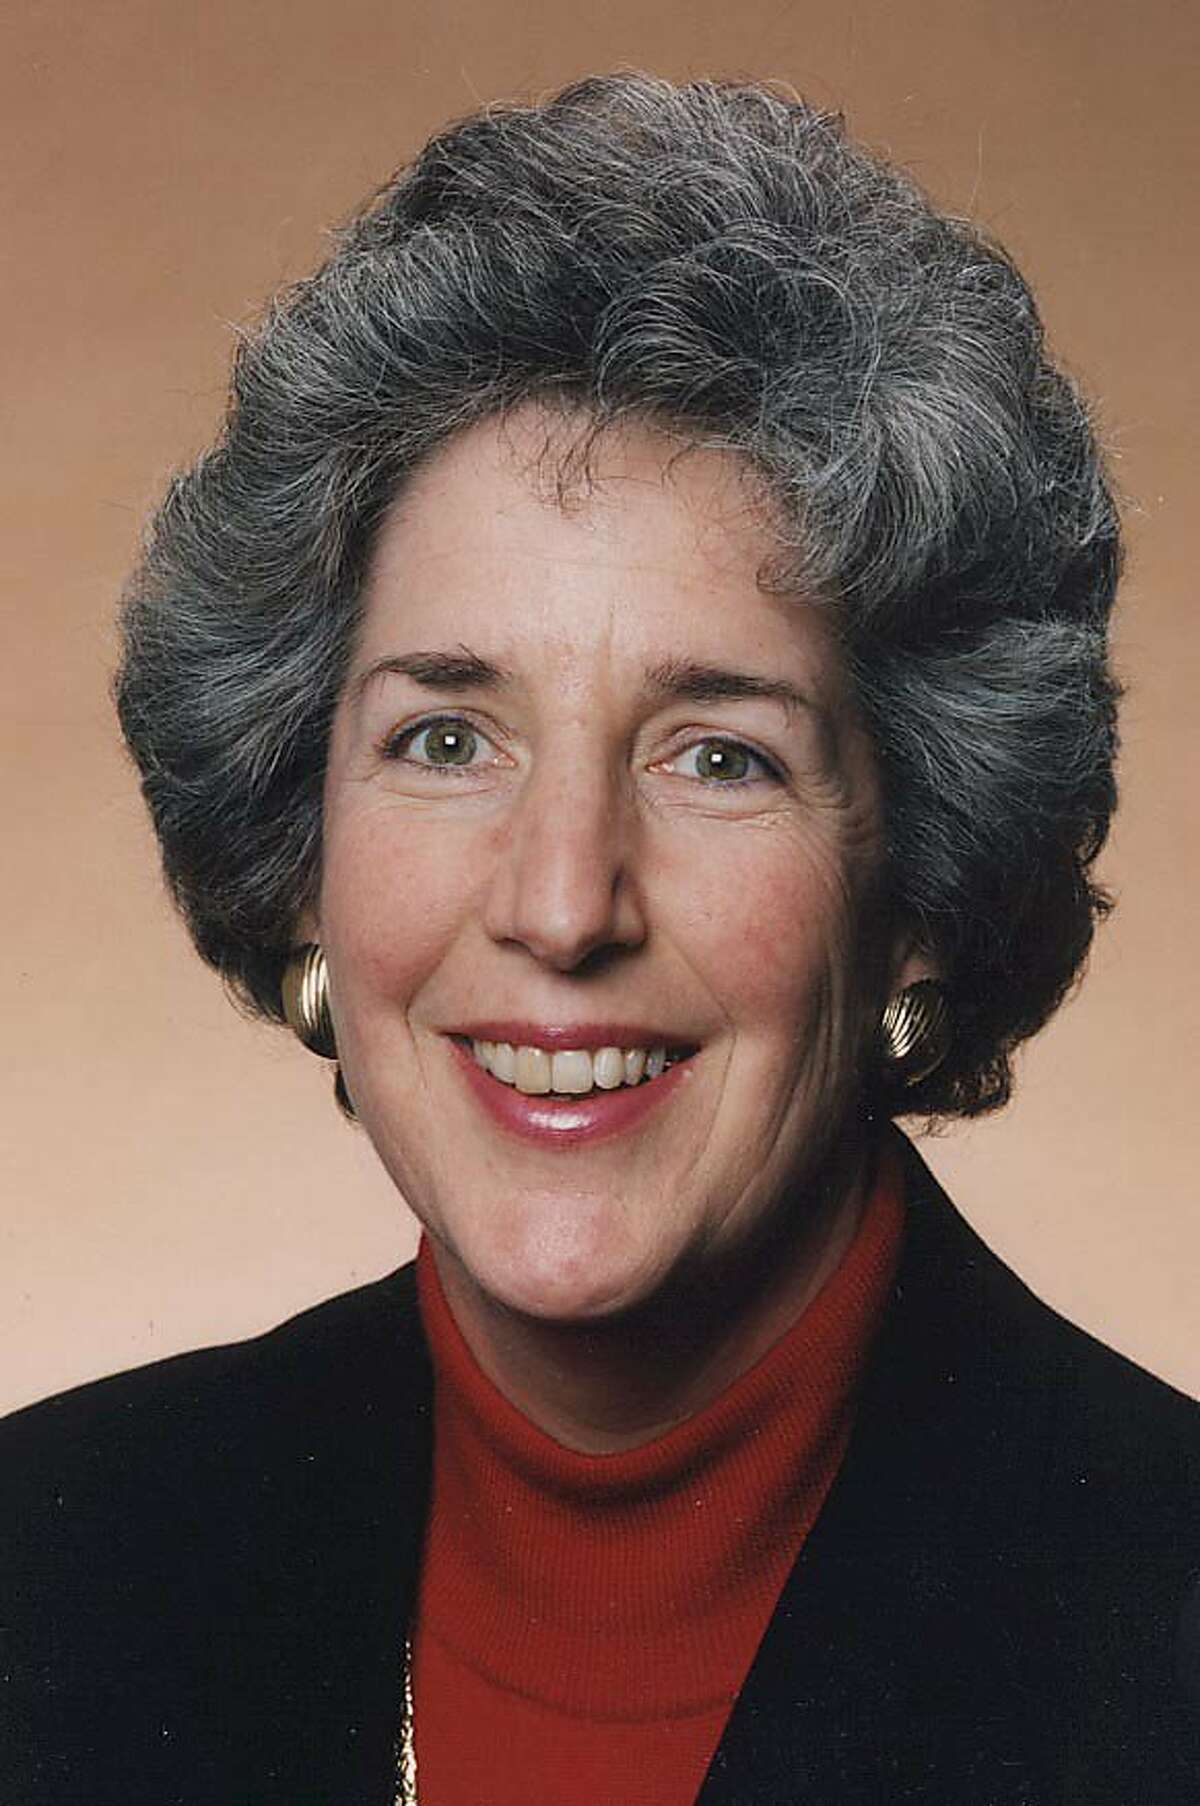 Justice Carol Corrigan is one of three potential candidates for state Supreme Court whose names were submitted by Schwarzenegger to State Bar commission for review. Ran on: 08-27-2005 Carol Corrigan serves on the state Court of Appeal. Ran on: 08-27-2005 Carol Corrigan serves on the state Court of Appeal. Ran on: 08-27-2005 Carol Corrigan serves on the state Court of Appeal.